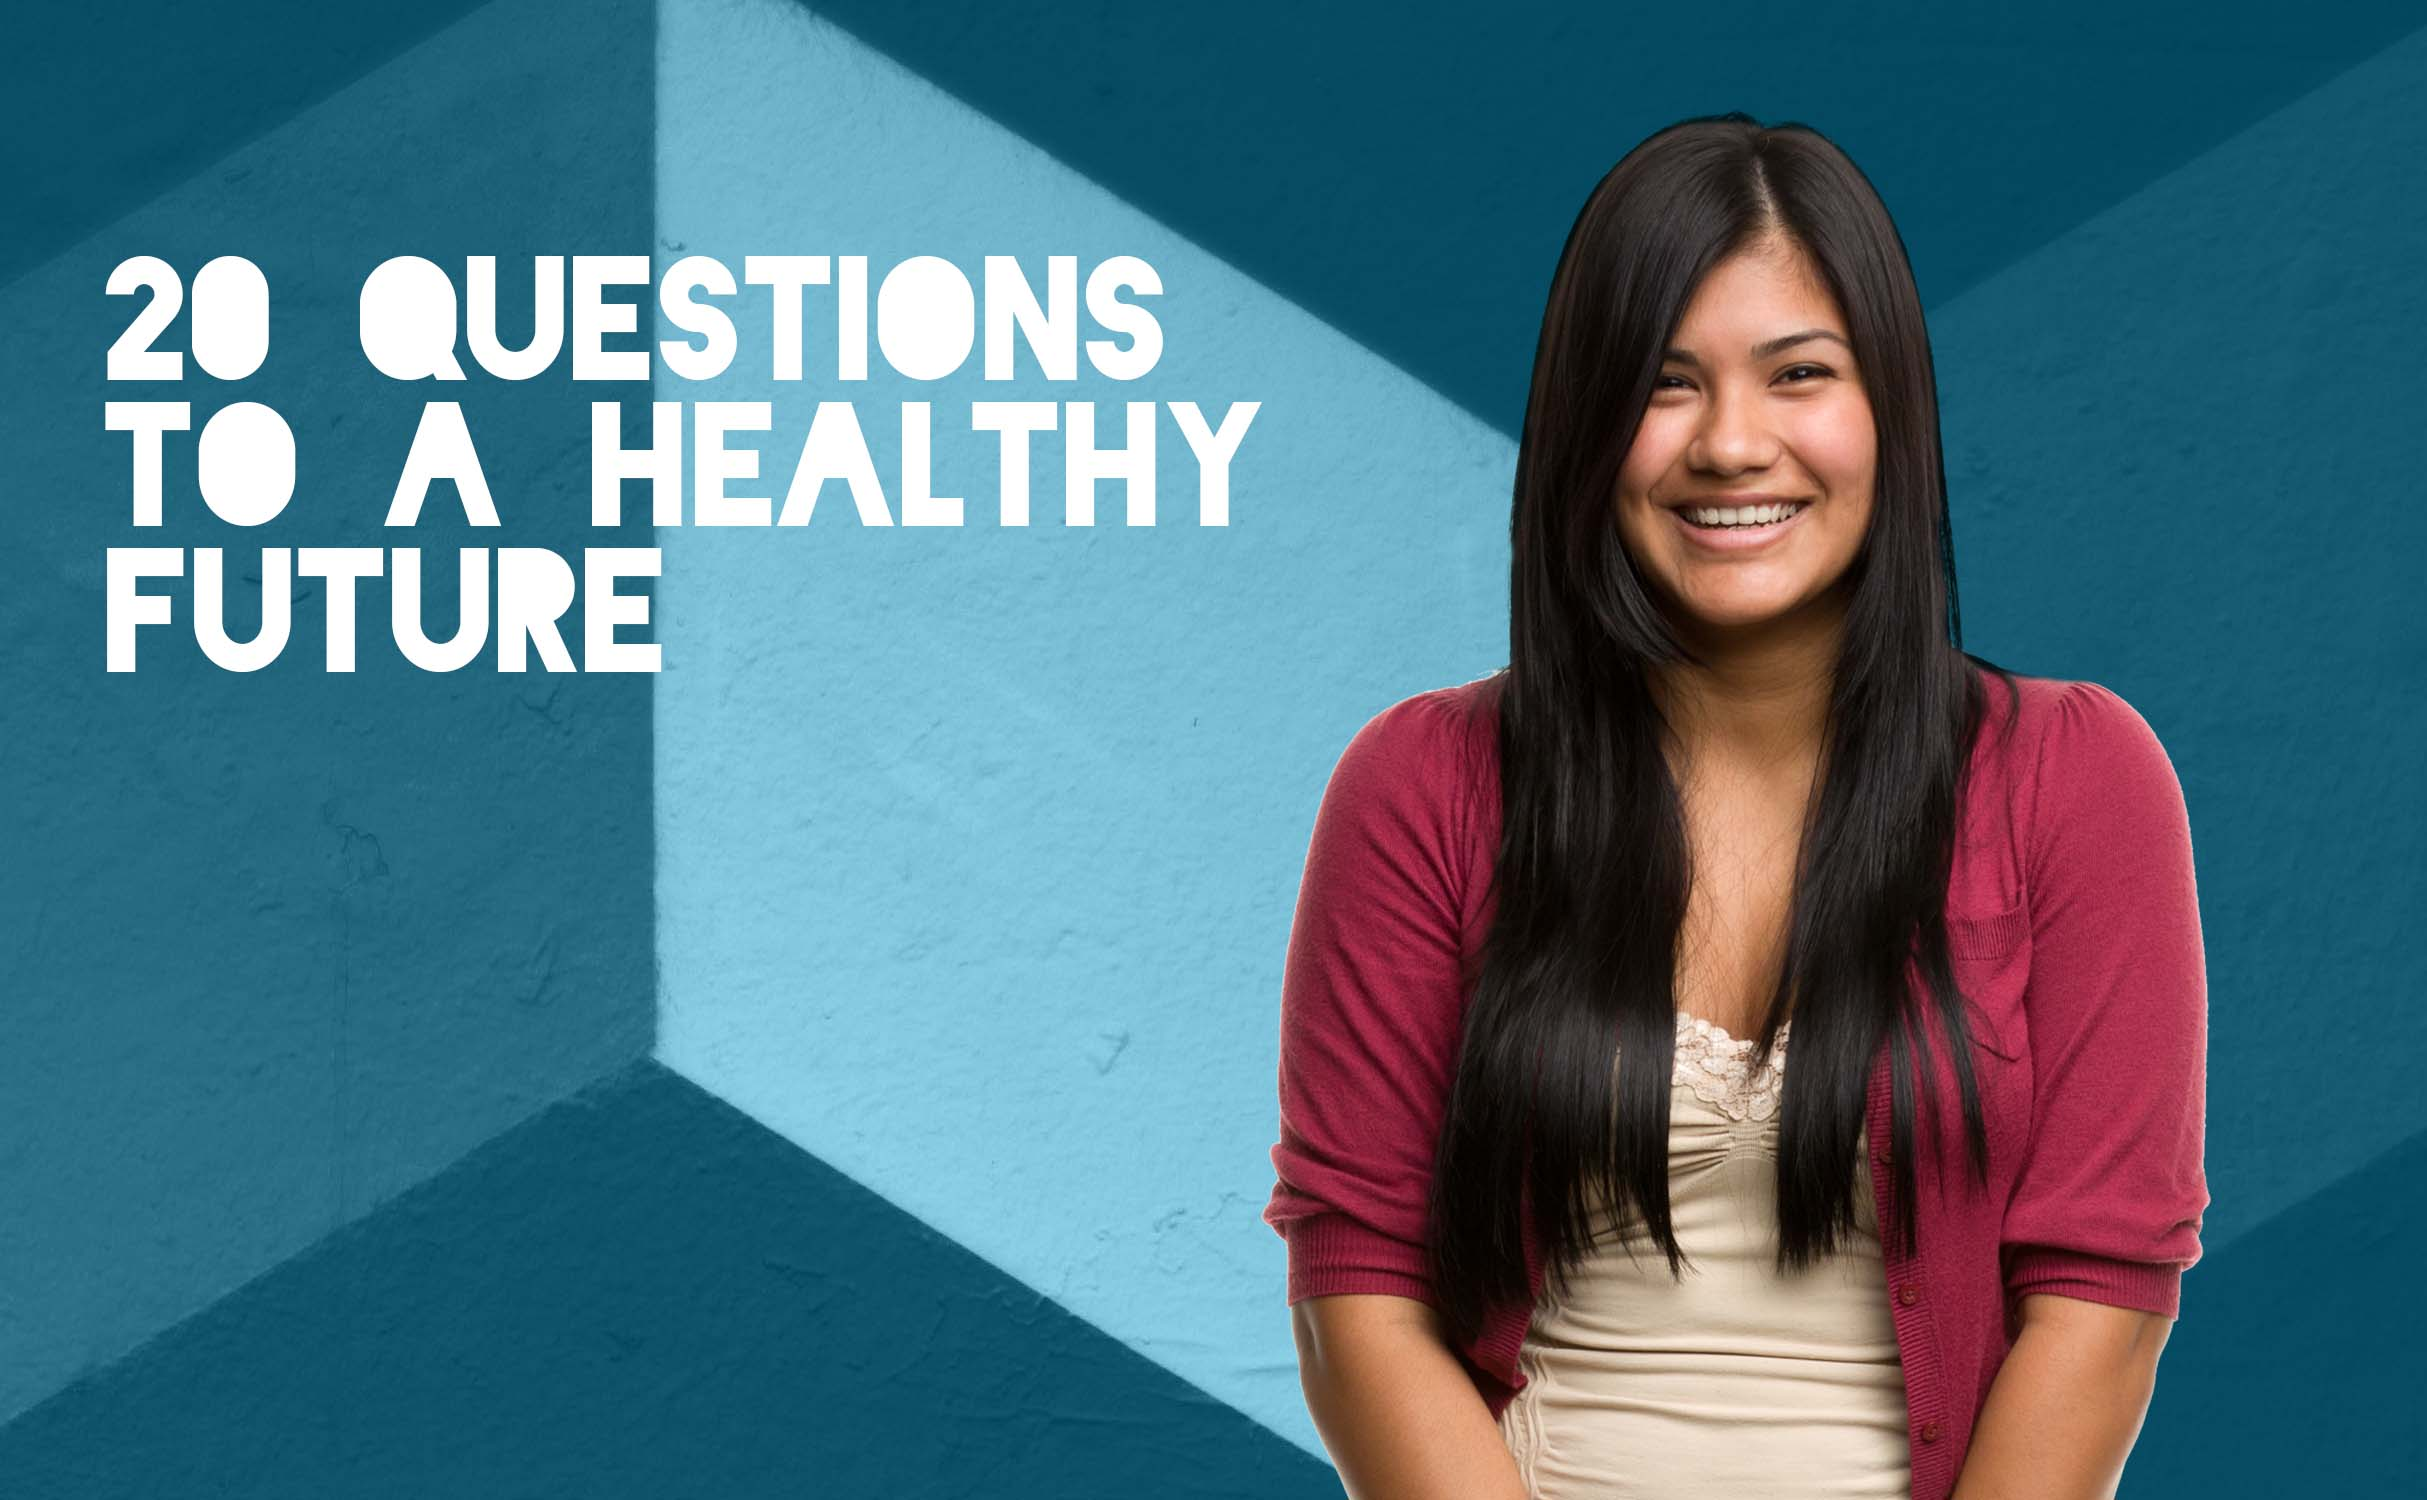 """Image with adolescent smiling with text, """"20 questions to a healthy future"""" displayed"""